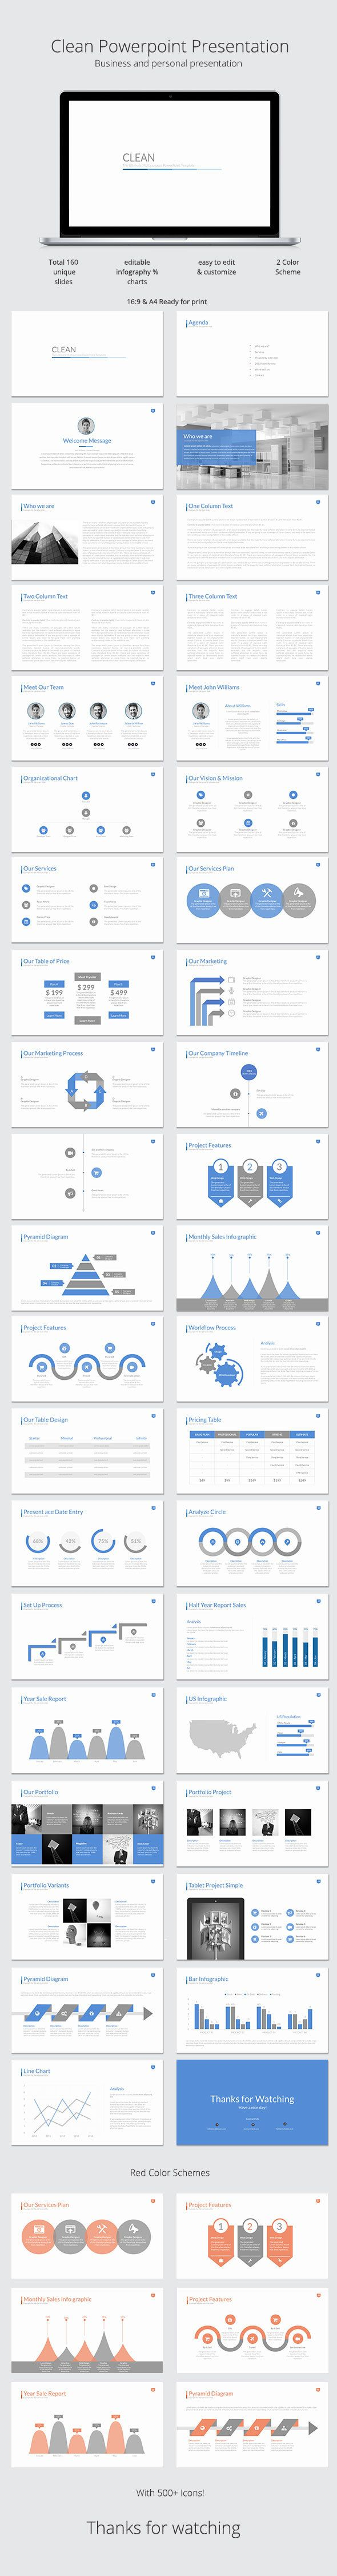 Coolmathgamesus  Unique  Ideas About Powerpoint Presentations On Pinterest With Goodlooking Clean Powerpoint Template With Alluring Reduce Powerpoint Size Also Kingsoft Powerpoint In Addition Free Swot Template Powerpoint And Windows Powerpoint Templates As Well As Templates For Powerpoint  Additionally Powerpoint Image Opacity From Pinterestcom With Coolmathgamesus  Goodlooking  Ideas About Powerpoint Presentations On Pinterest With Alluring Clean Powerpoint Template And Unique Reduce Powerpoint Size Also Kingsoft Powerpoint In Addition Free Swot Template Powerpoint From Pinterestcom